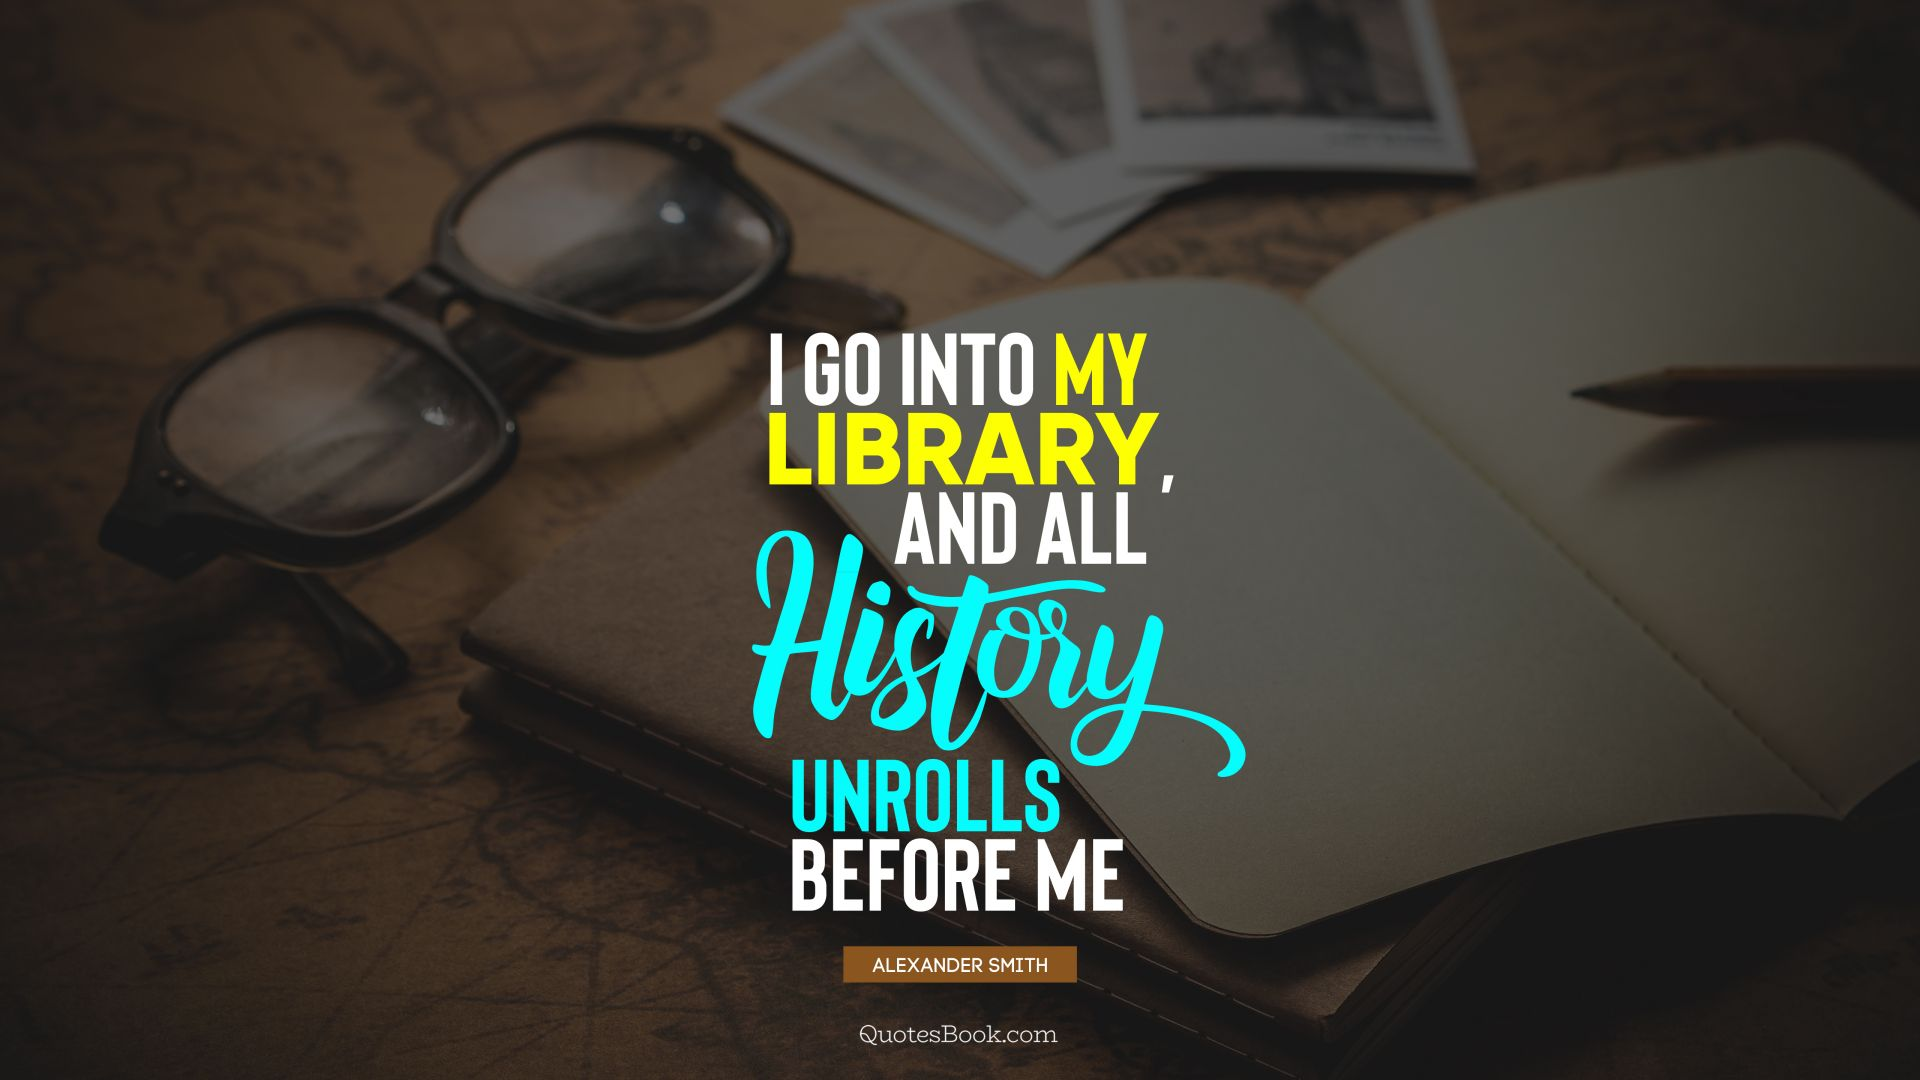 I go into my library, and all history unrolls before me. - Quote by Alexander Smith